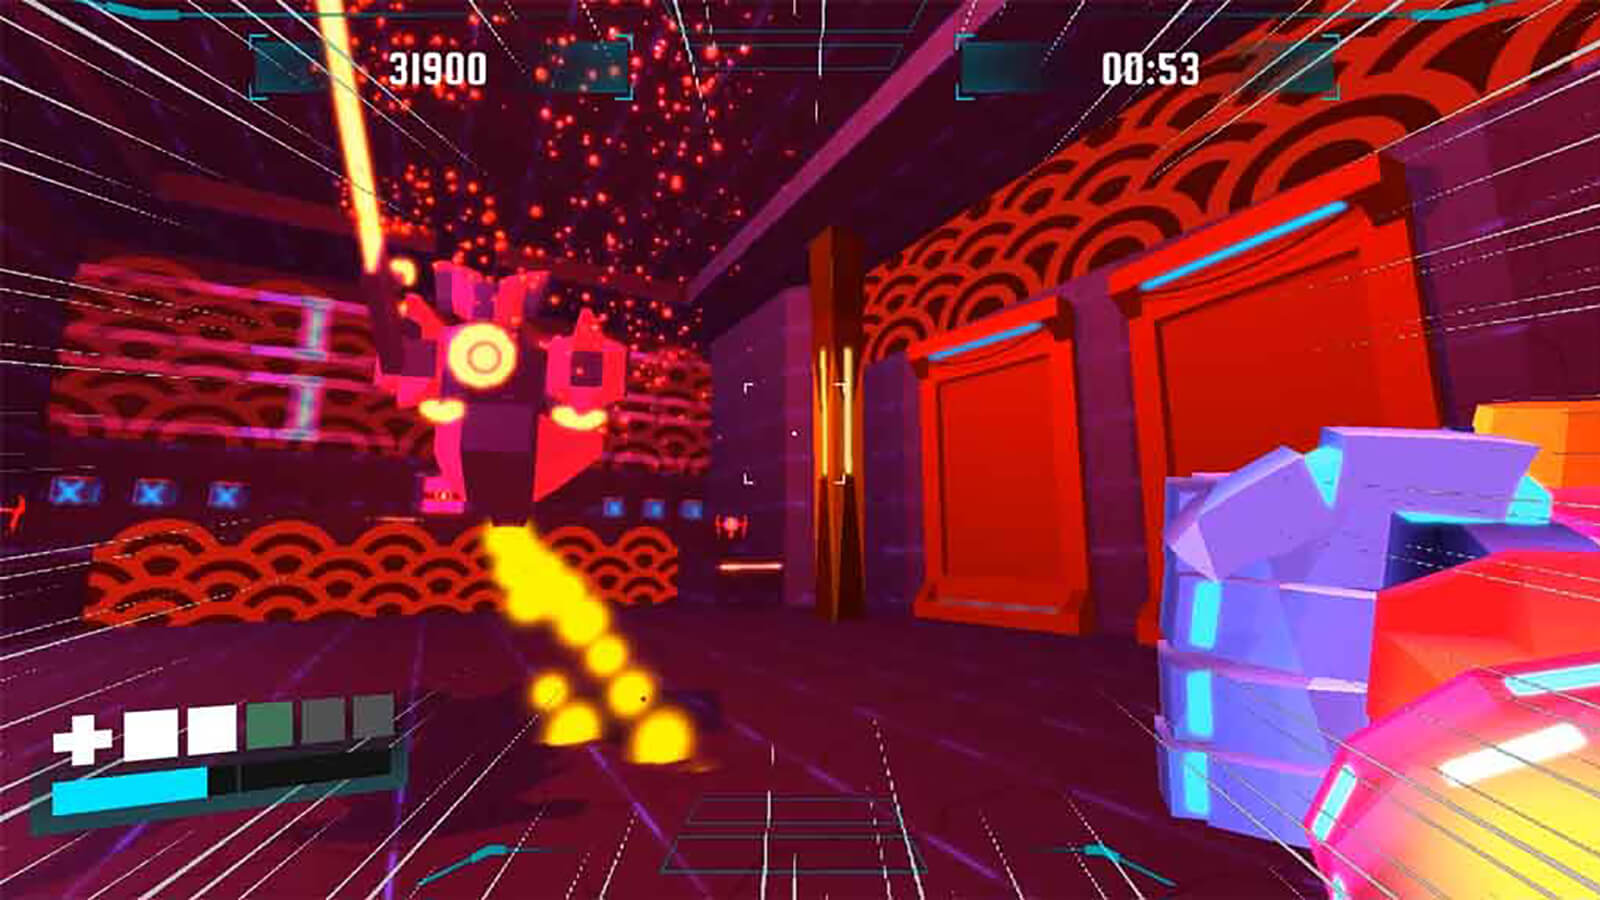 A stylized, violet-colored fist rushes in from the right toward a floating red robot in a vivid neon red room.